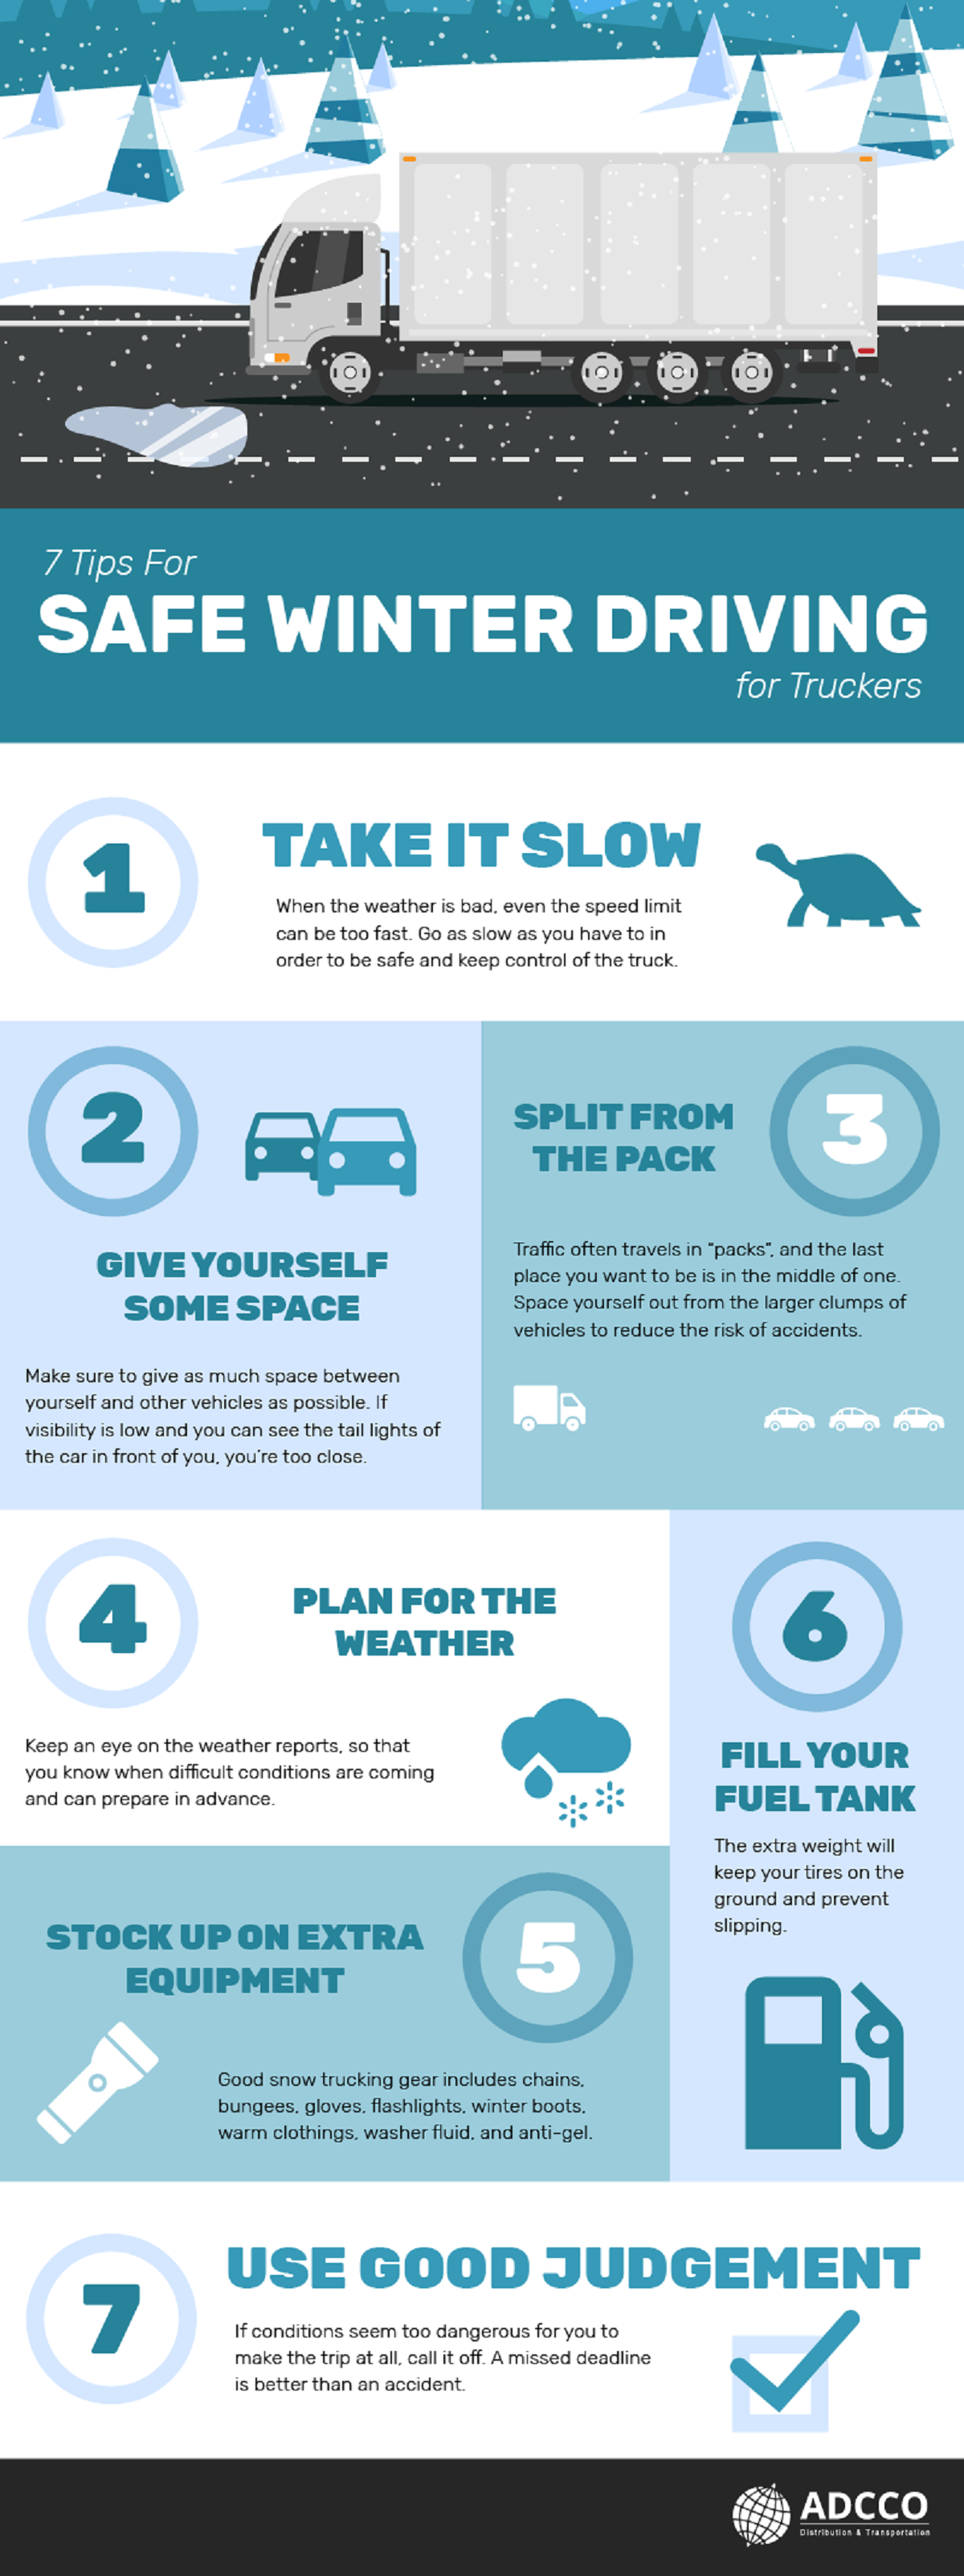 7-tips-for-safe-winter-driving-infographic